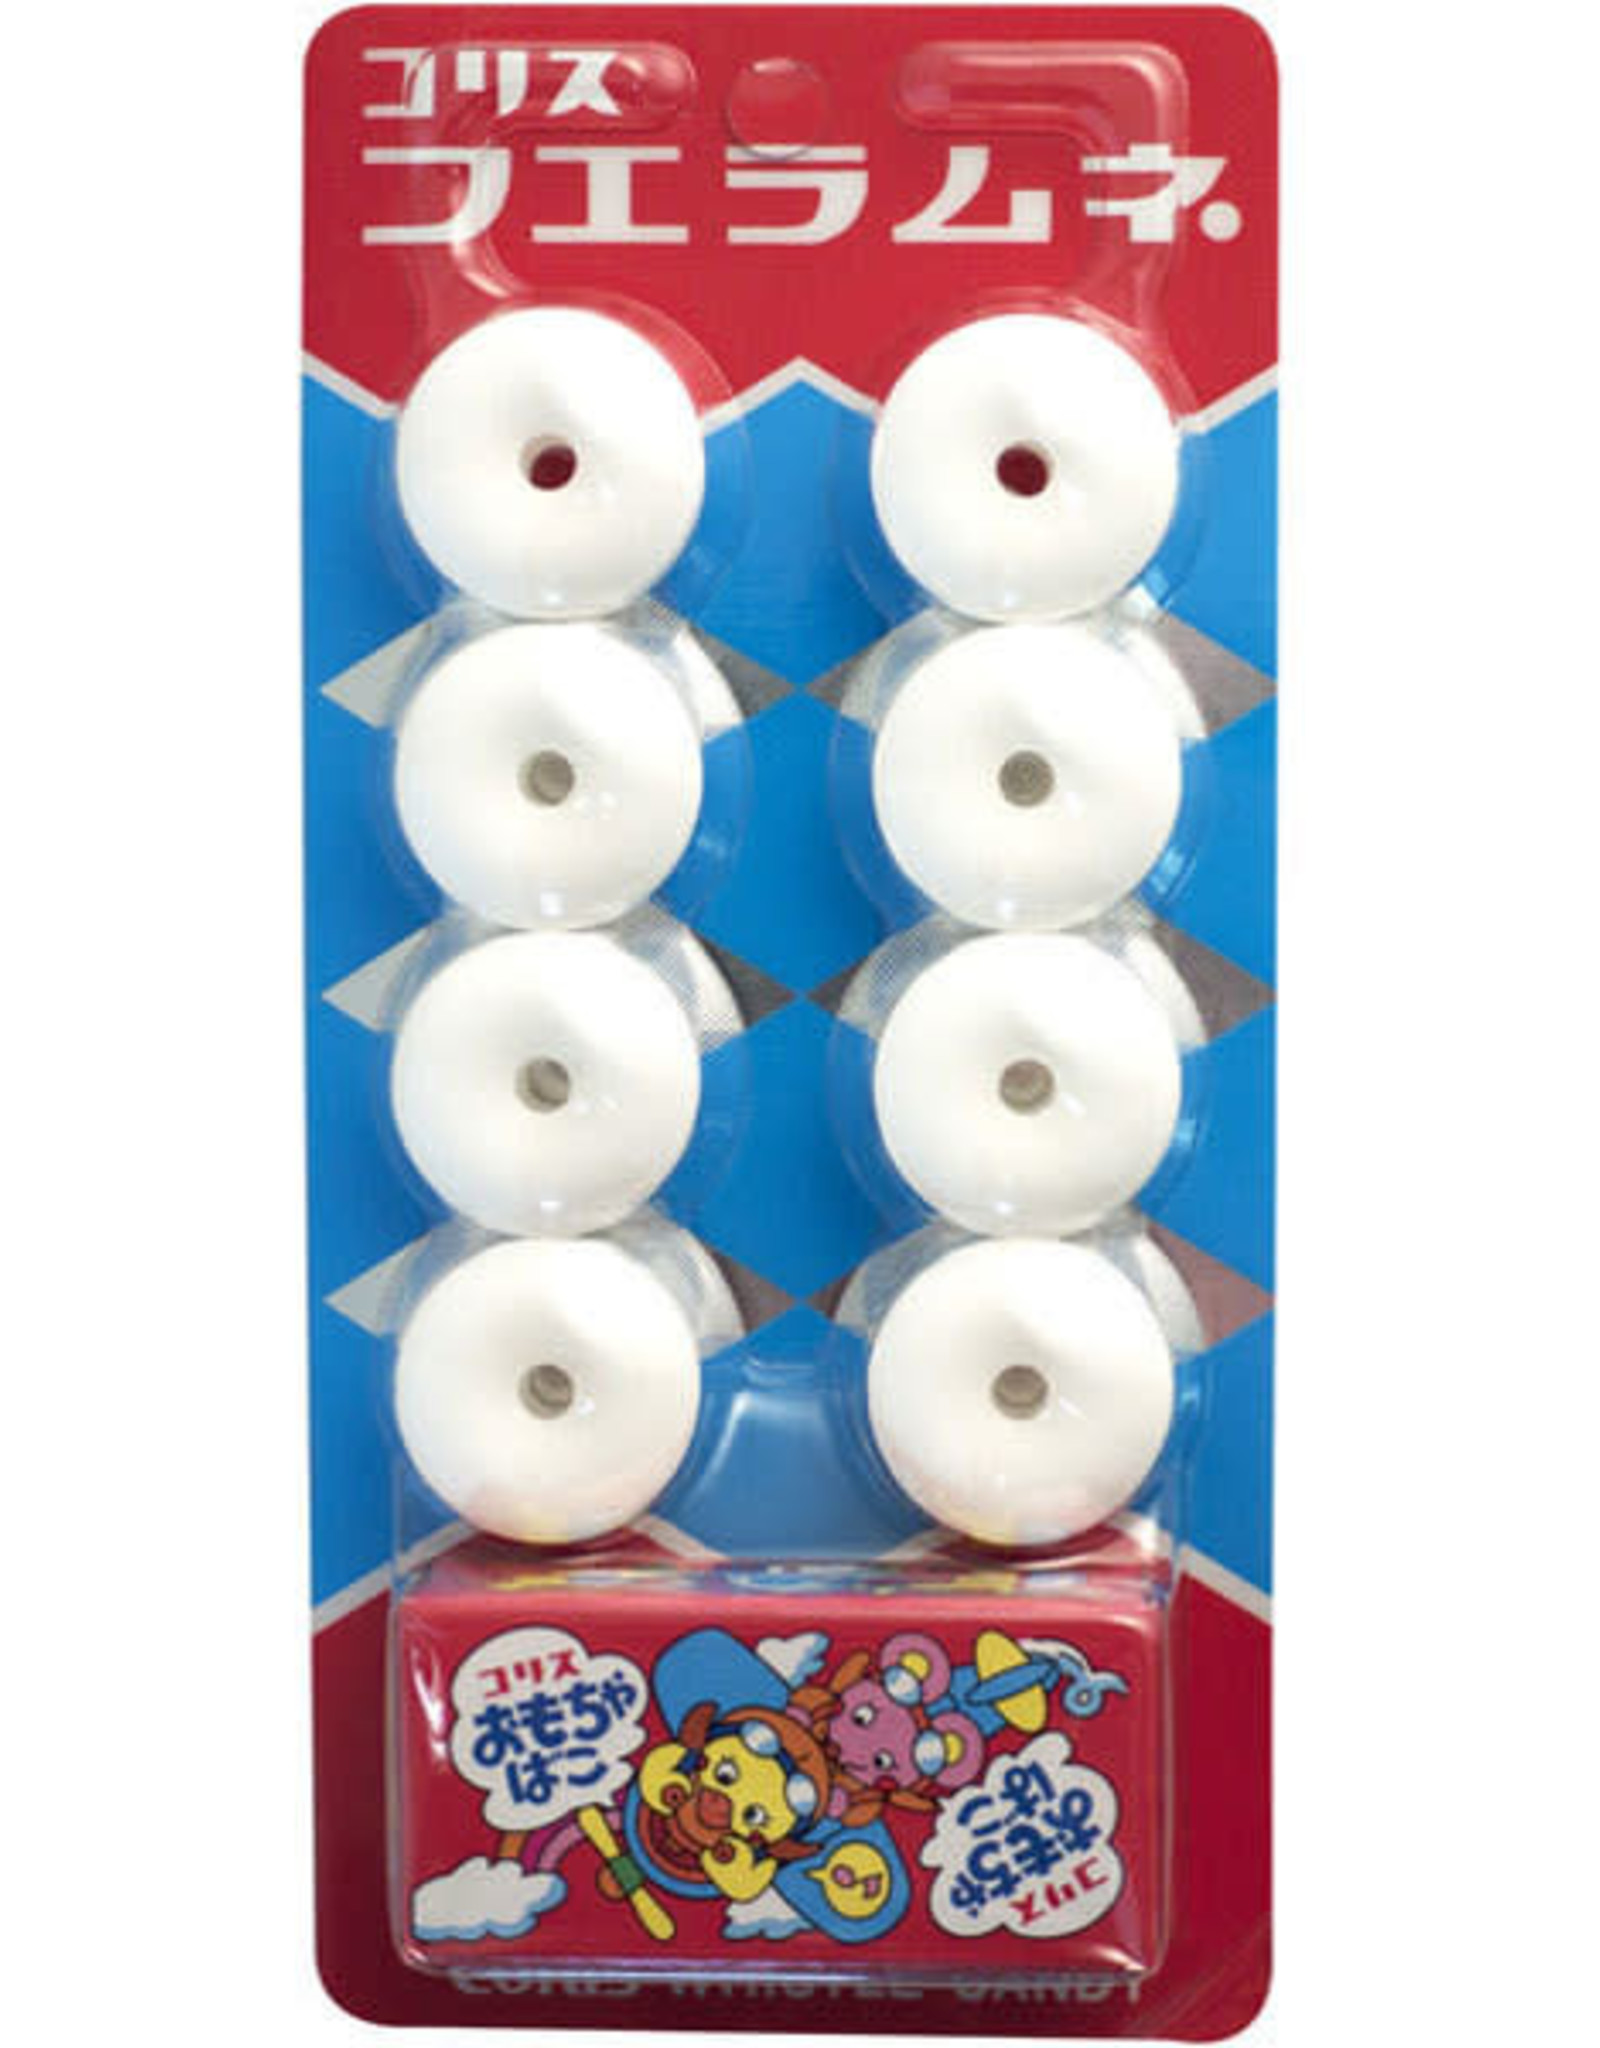 Whistle Candy